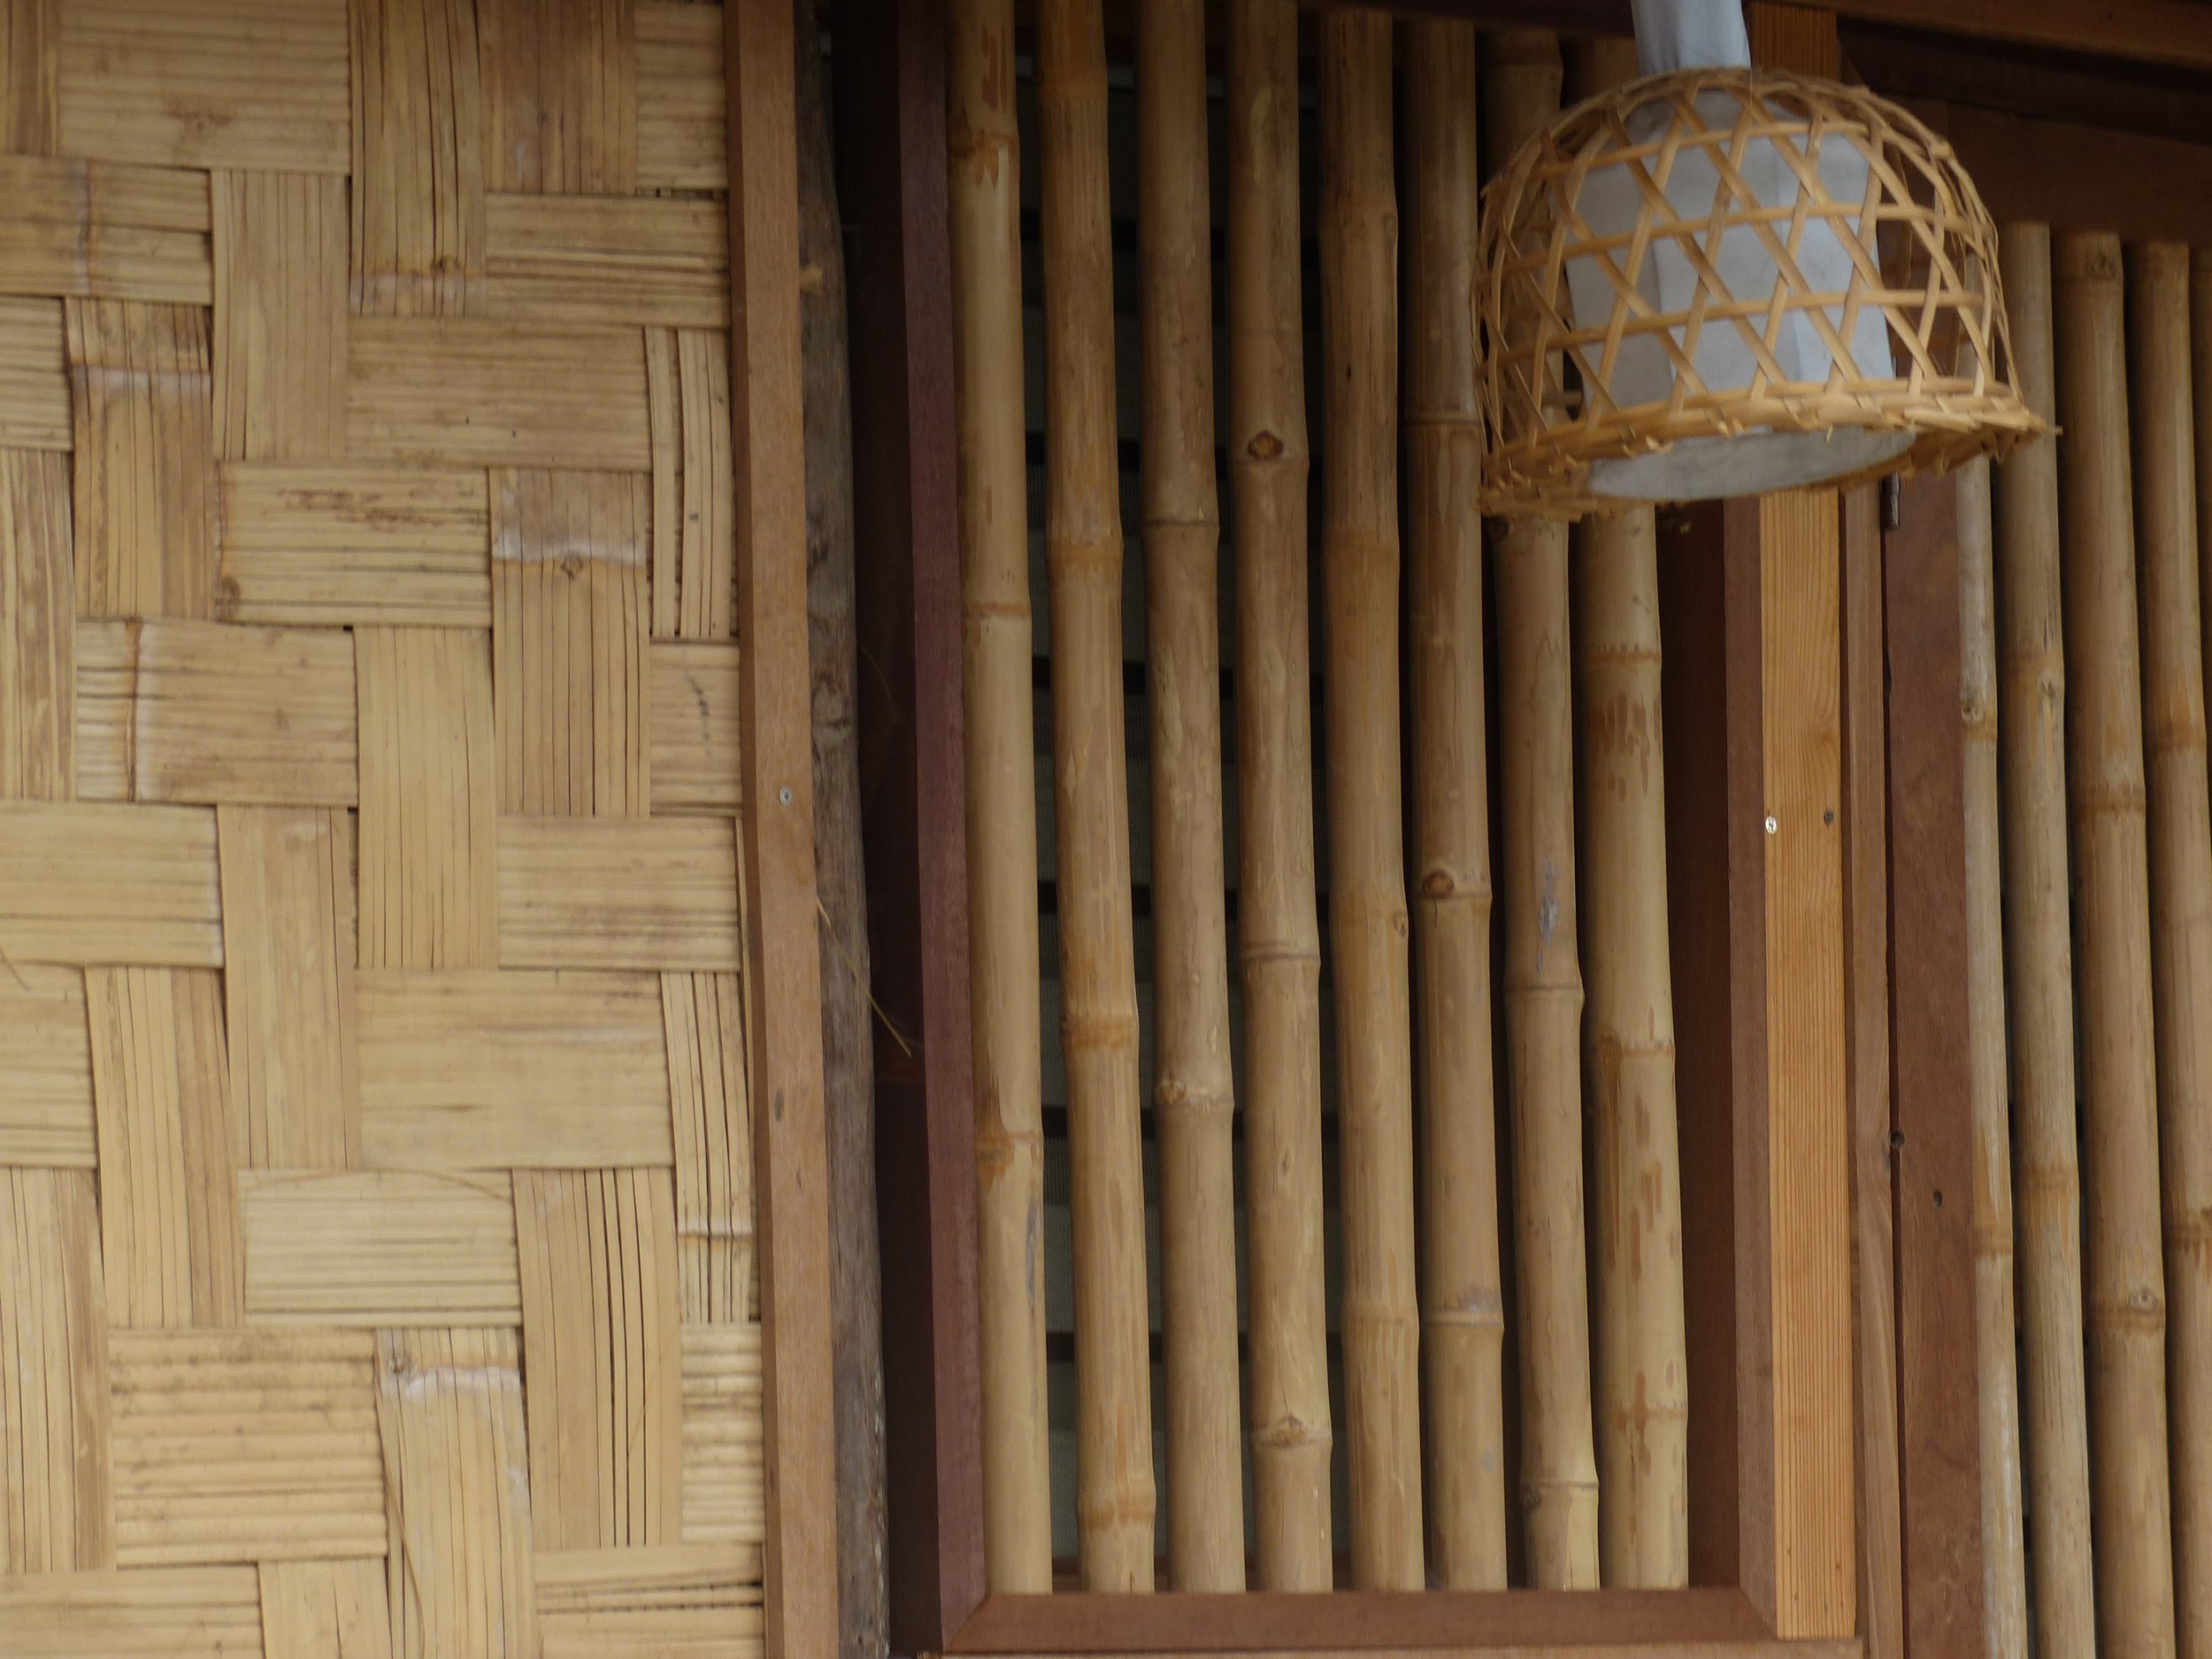 Where did the idea for a home entirely made of bamboo come from?